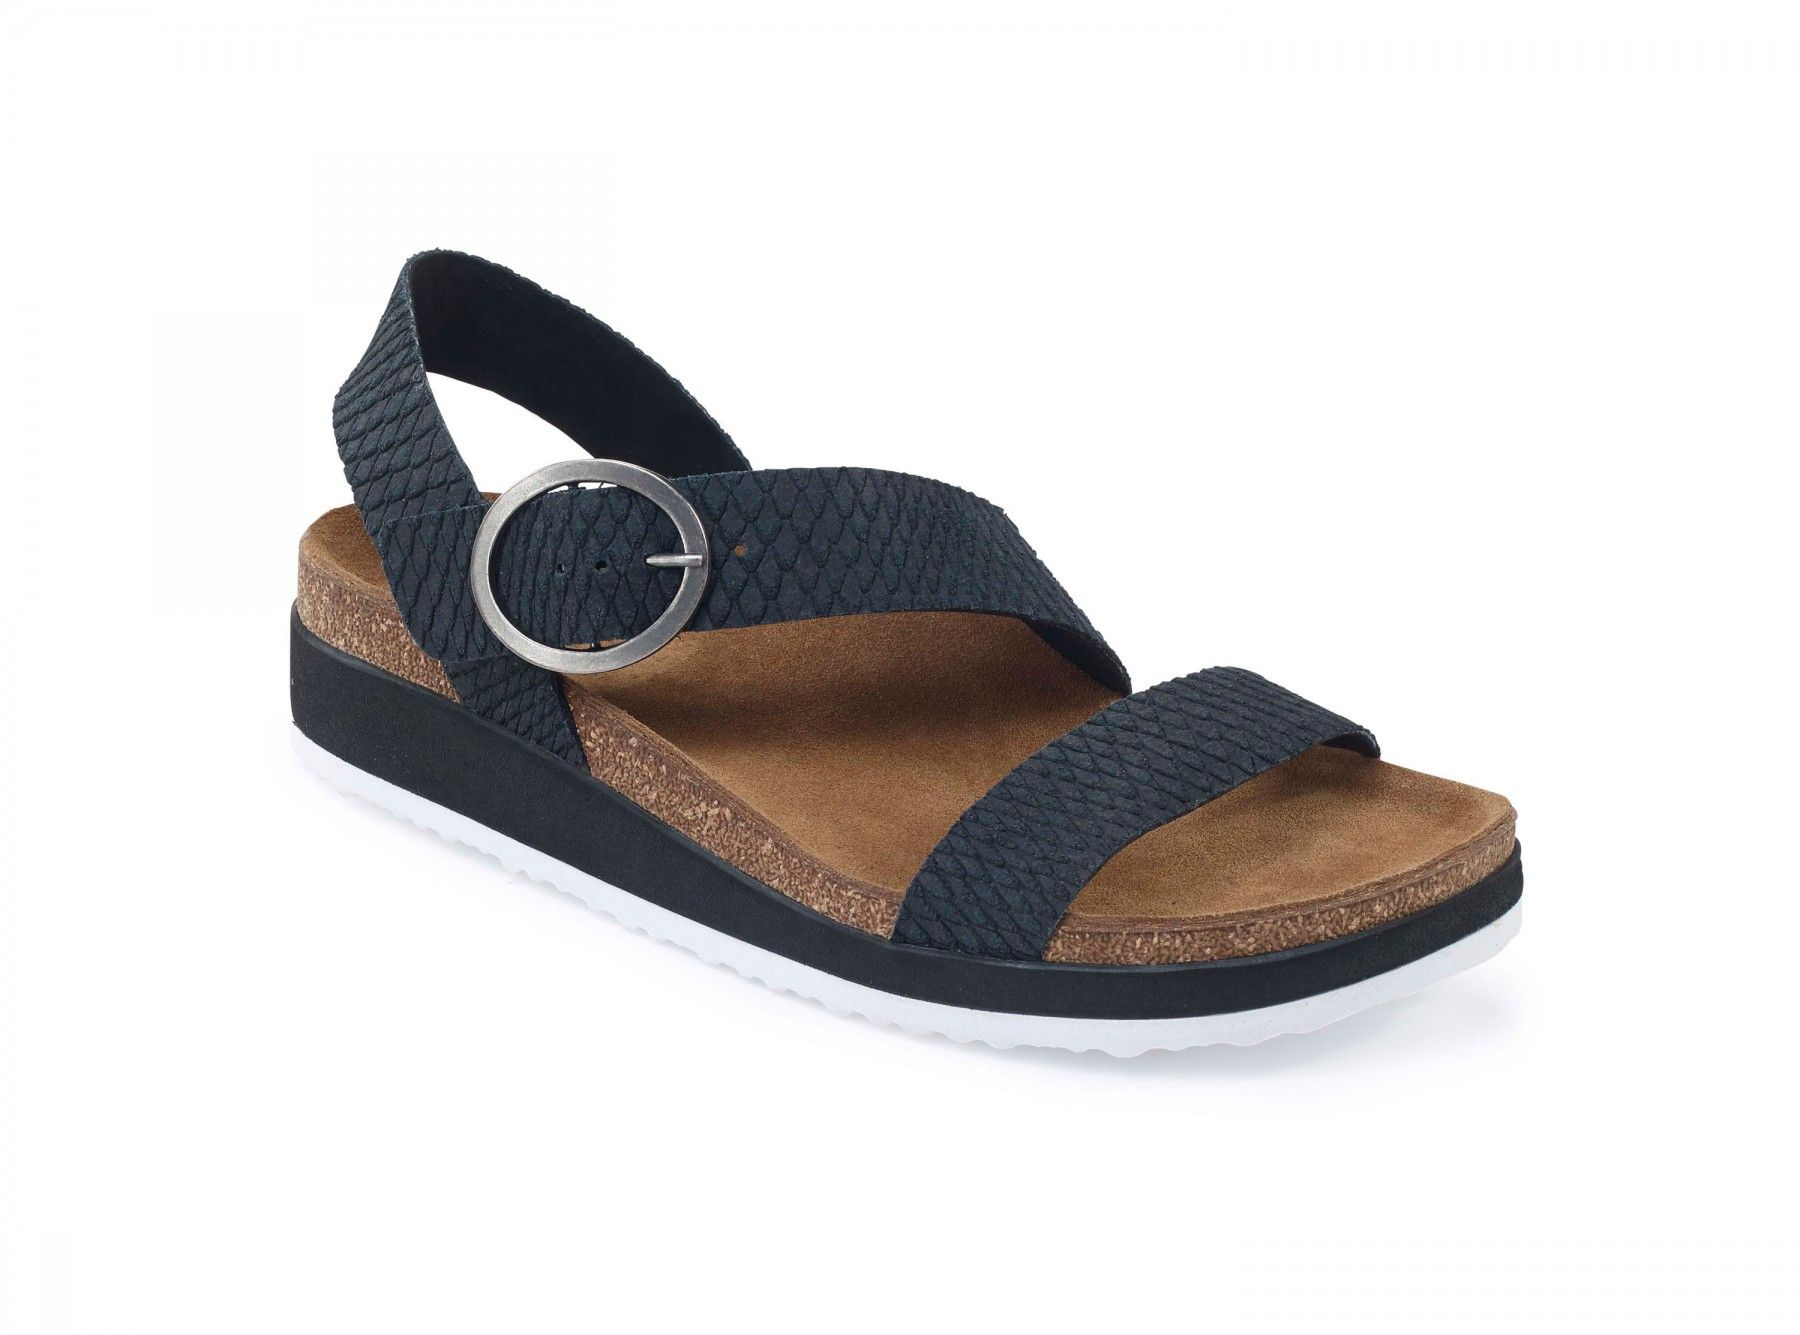 592f824e626 Aetrex Womens - Adrianna Black - Comfortable Suede Sandal - Aetrex  Worldwide Orthotic Comfort Shoes